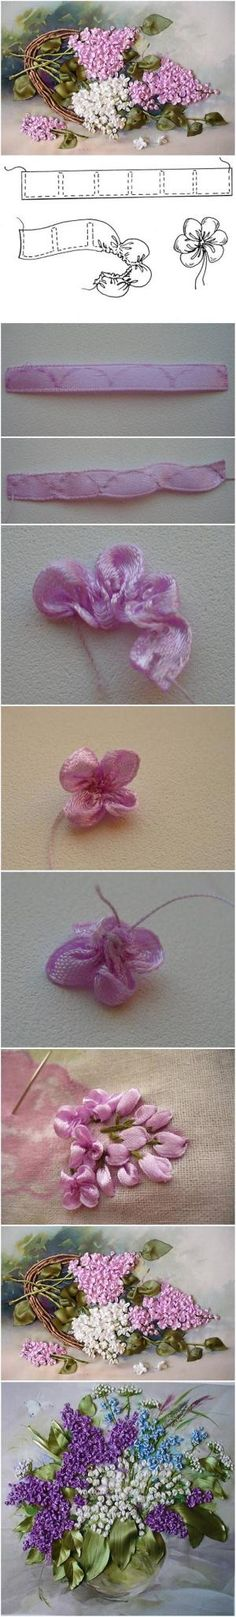 How to Make Embroidery Ribbon Lilac Flowers by anne